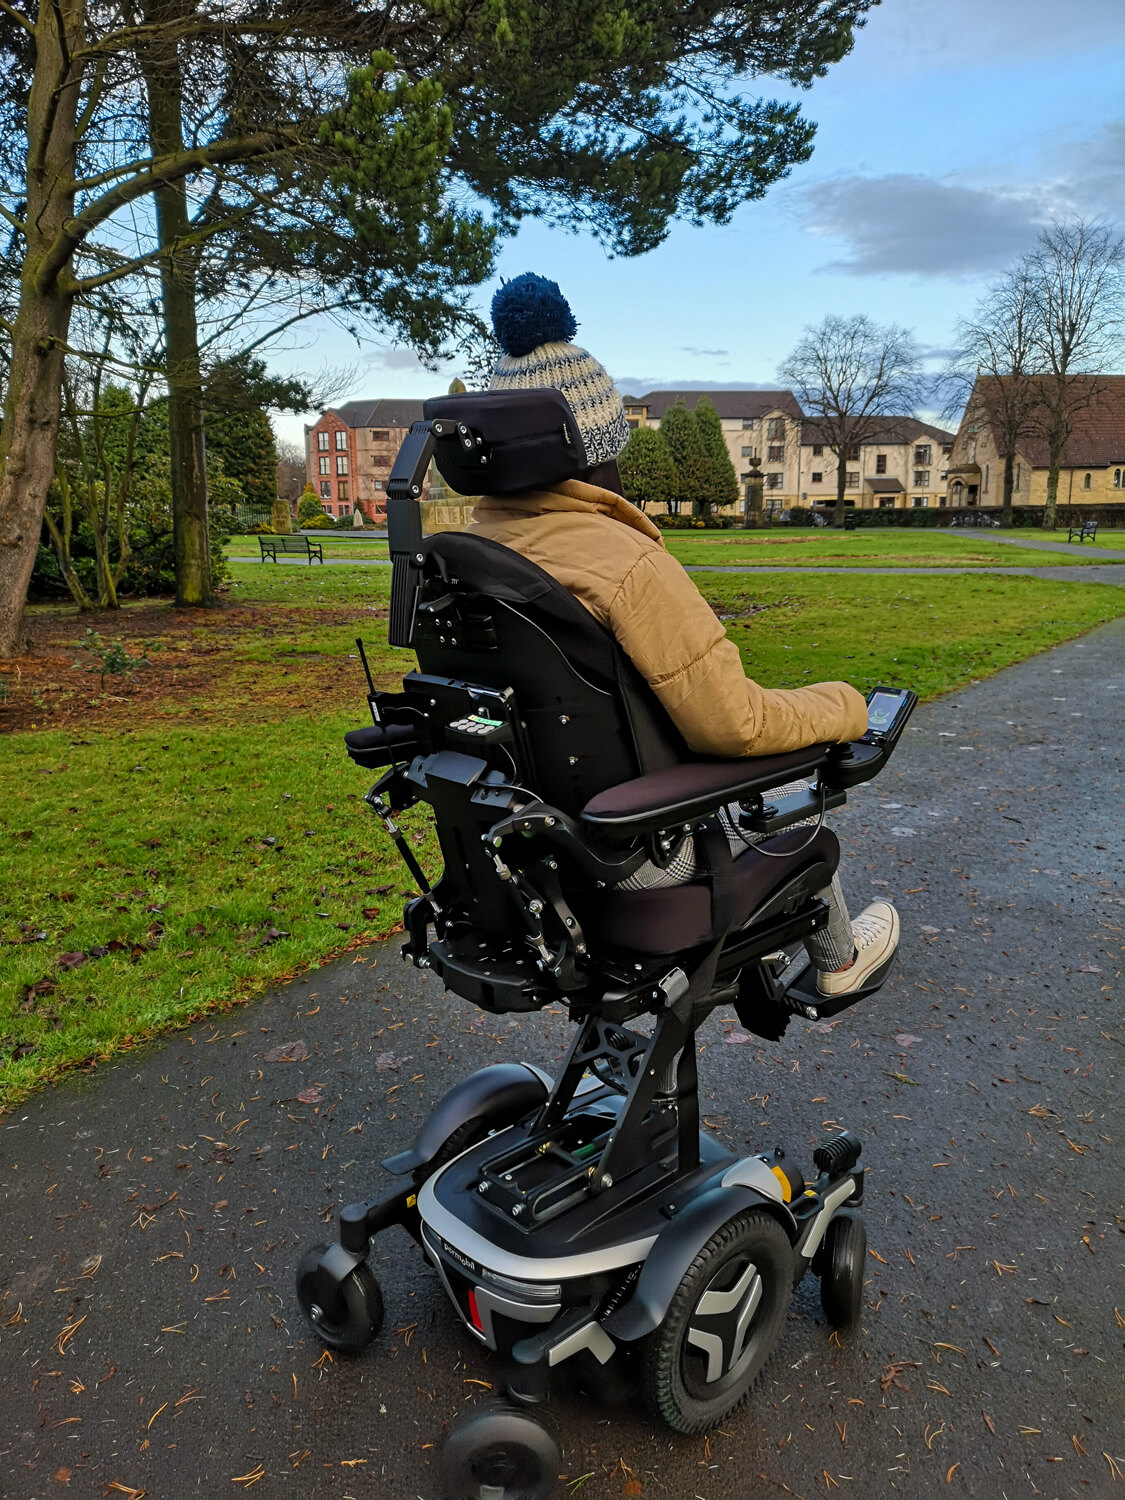 Emma, a wheelchair user sitting in a black and silver Permobil M3 wheelchair in a park. She is wearing a woolly hat, puffy jacket, black and white check trousers and white converse shoes. The wheelchair seat is elevated. Emma has her back towards the camera showing the back of the wheelchair. Trees and houses are in the background.